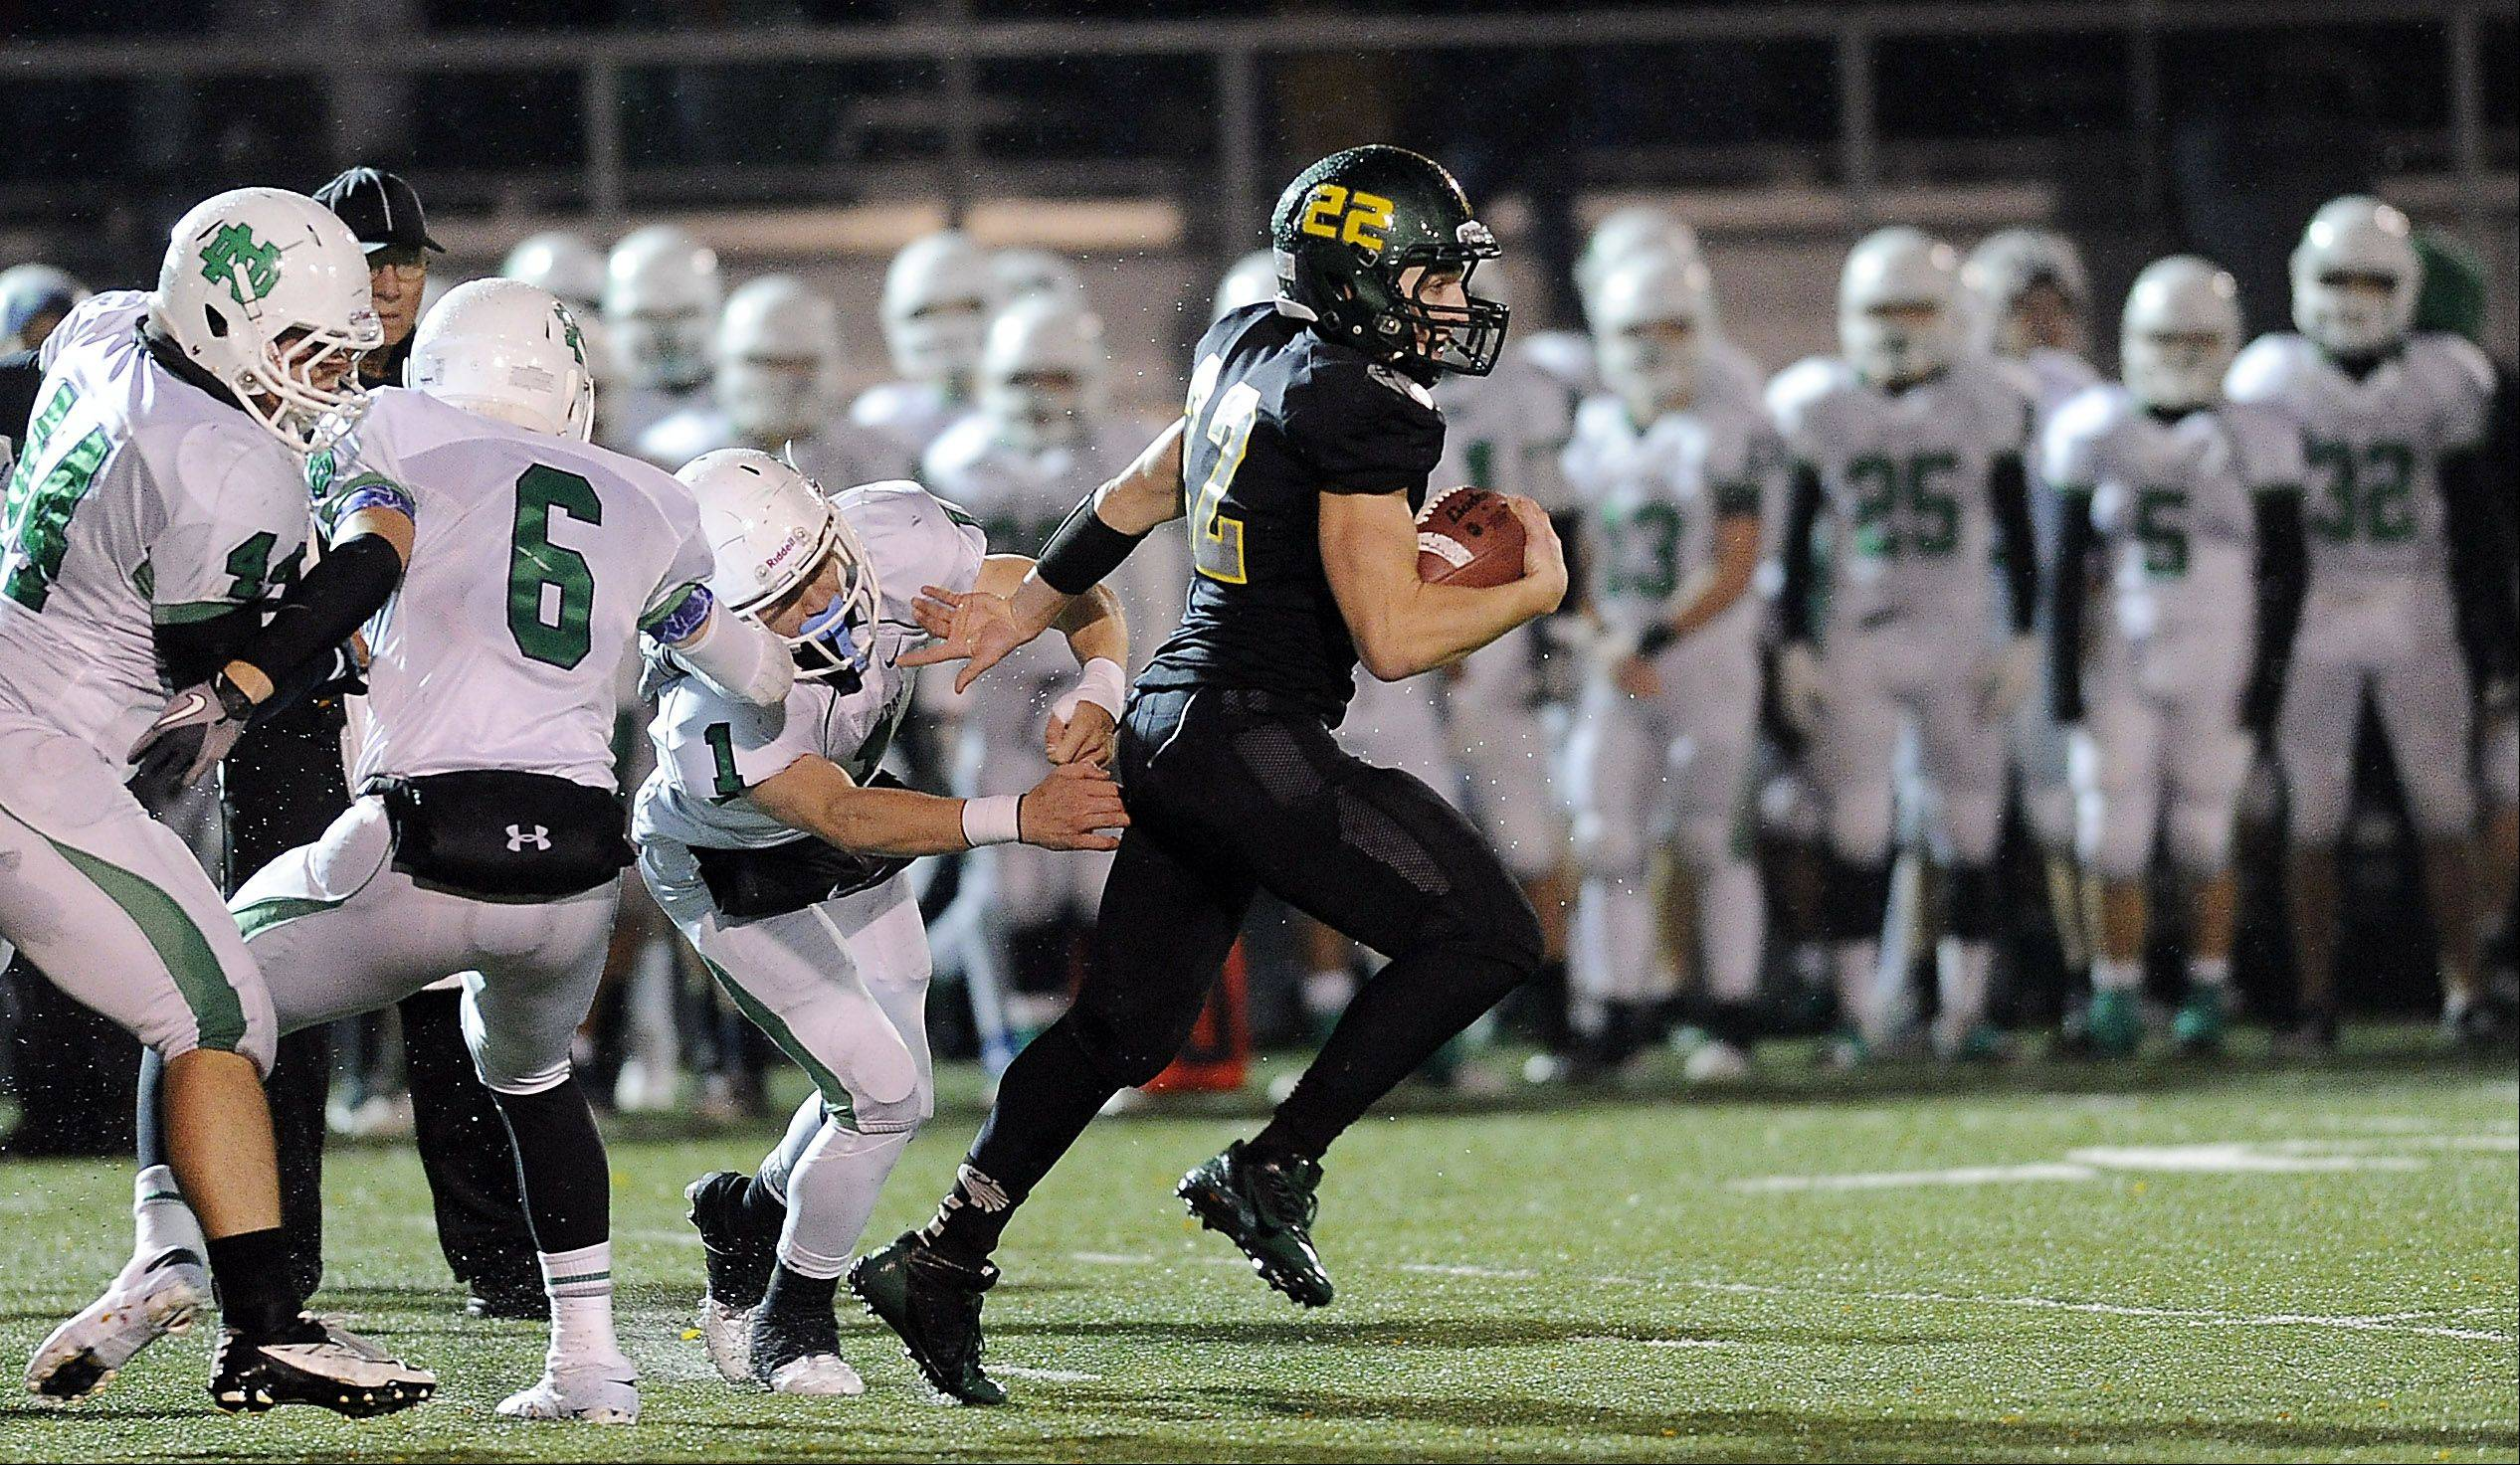 Fremd's Garrett Groot scrambles for a 44-yard run in the second quarter.